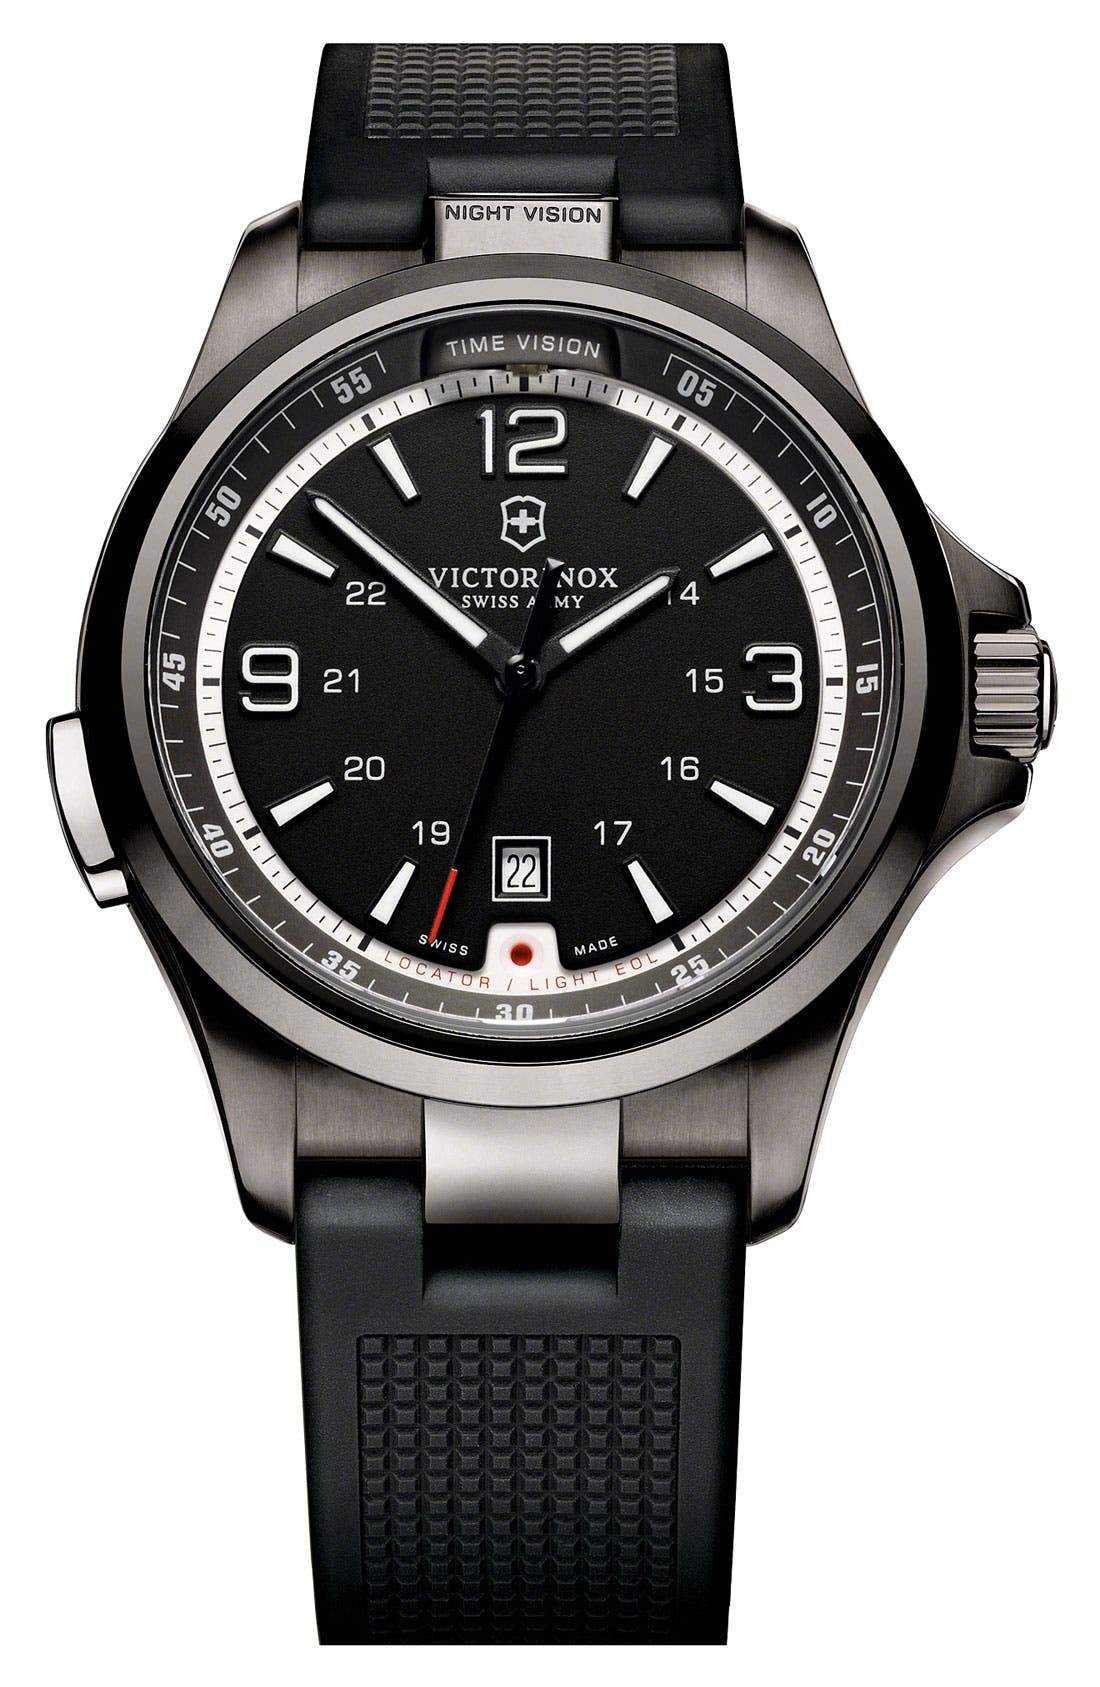 Alternate Image 1 Selected - Victorinox Swiss Army® 'Night Vision' Rubber Strap Watch, 42mm